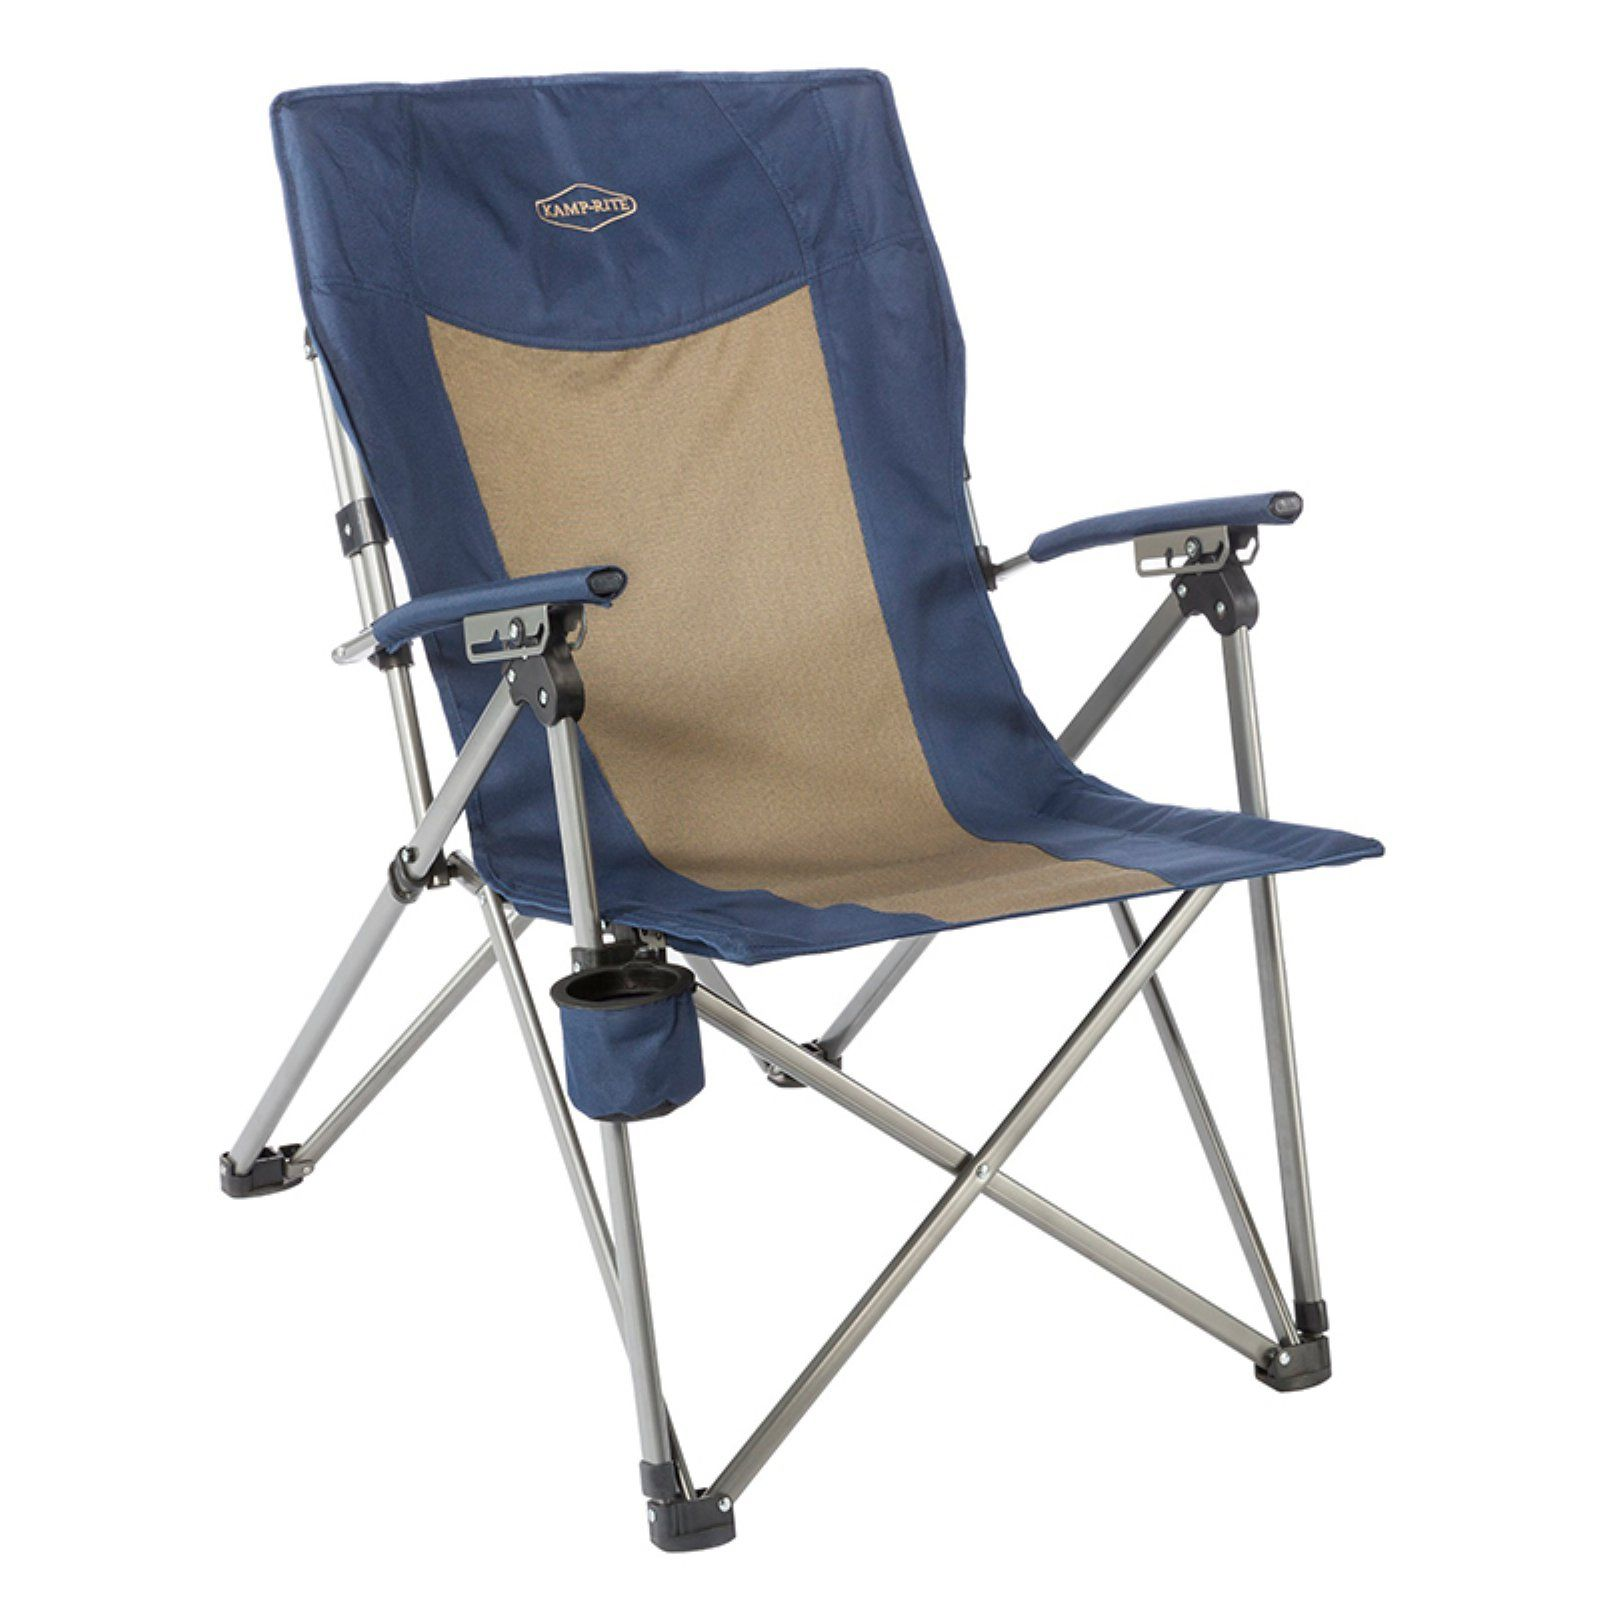 Outstanding Outdoor Kamp Rite 3 Position Hard Arm Reclining Chair Dailytribune Chair Design For Home Dailytribuneorg